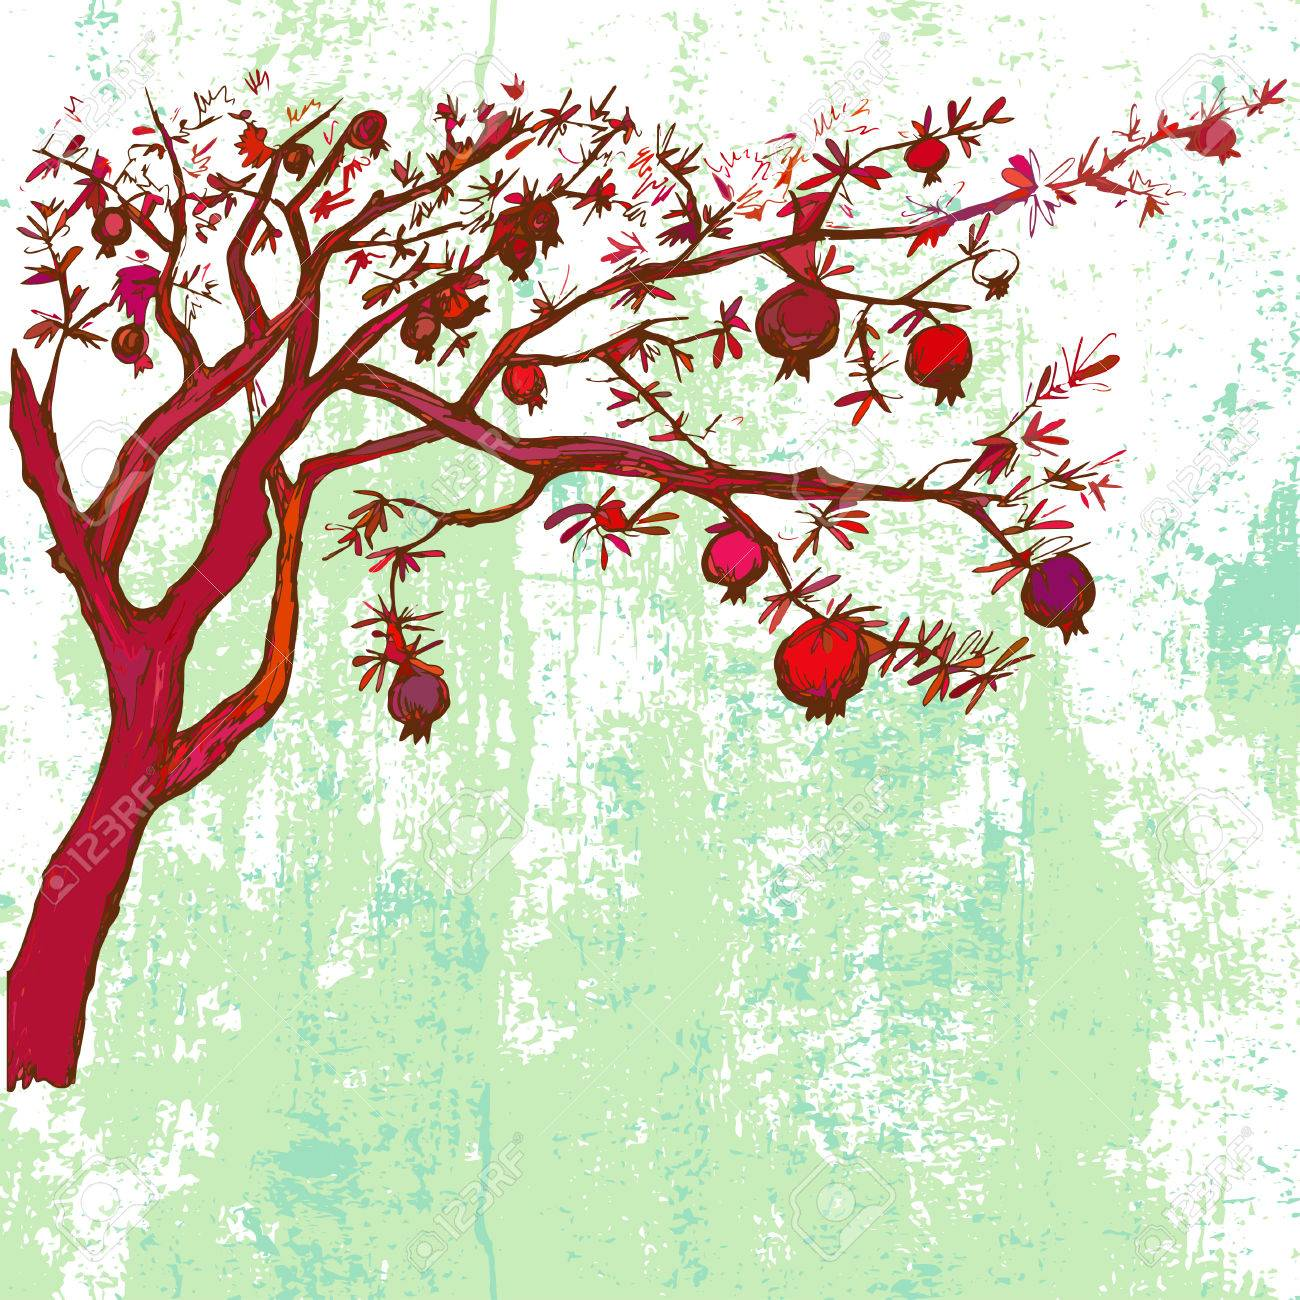 Hand Drawn Pomegranate Tree On Grunge Background Royalty Free Cliparts Vectors And Stock Illustration Image 47451824